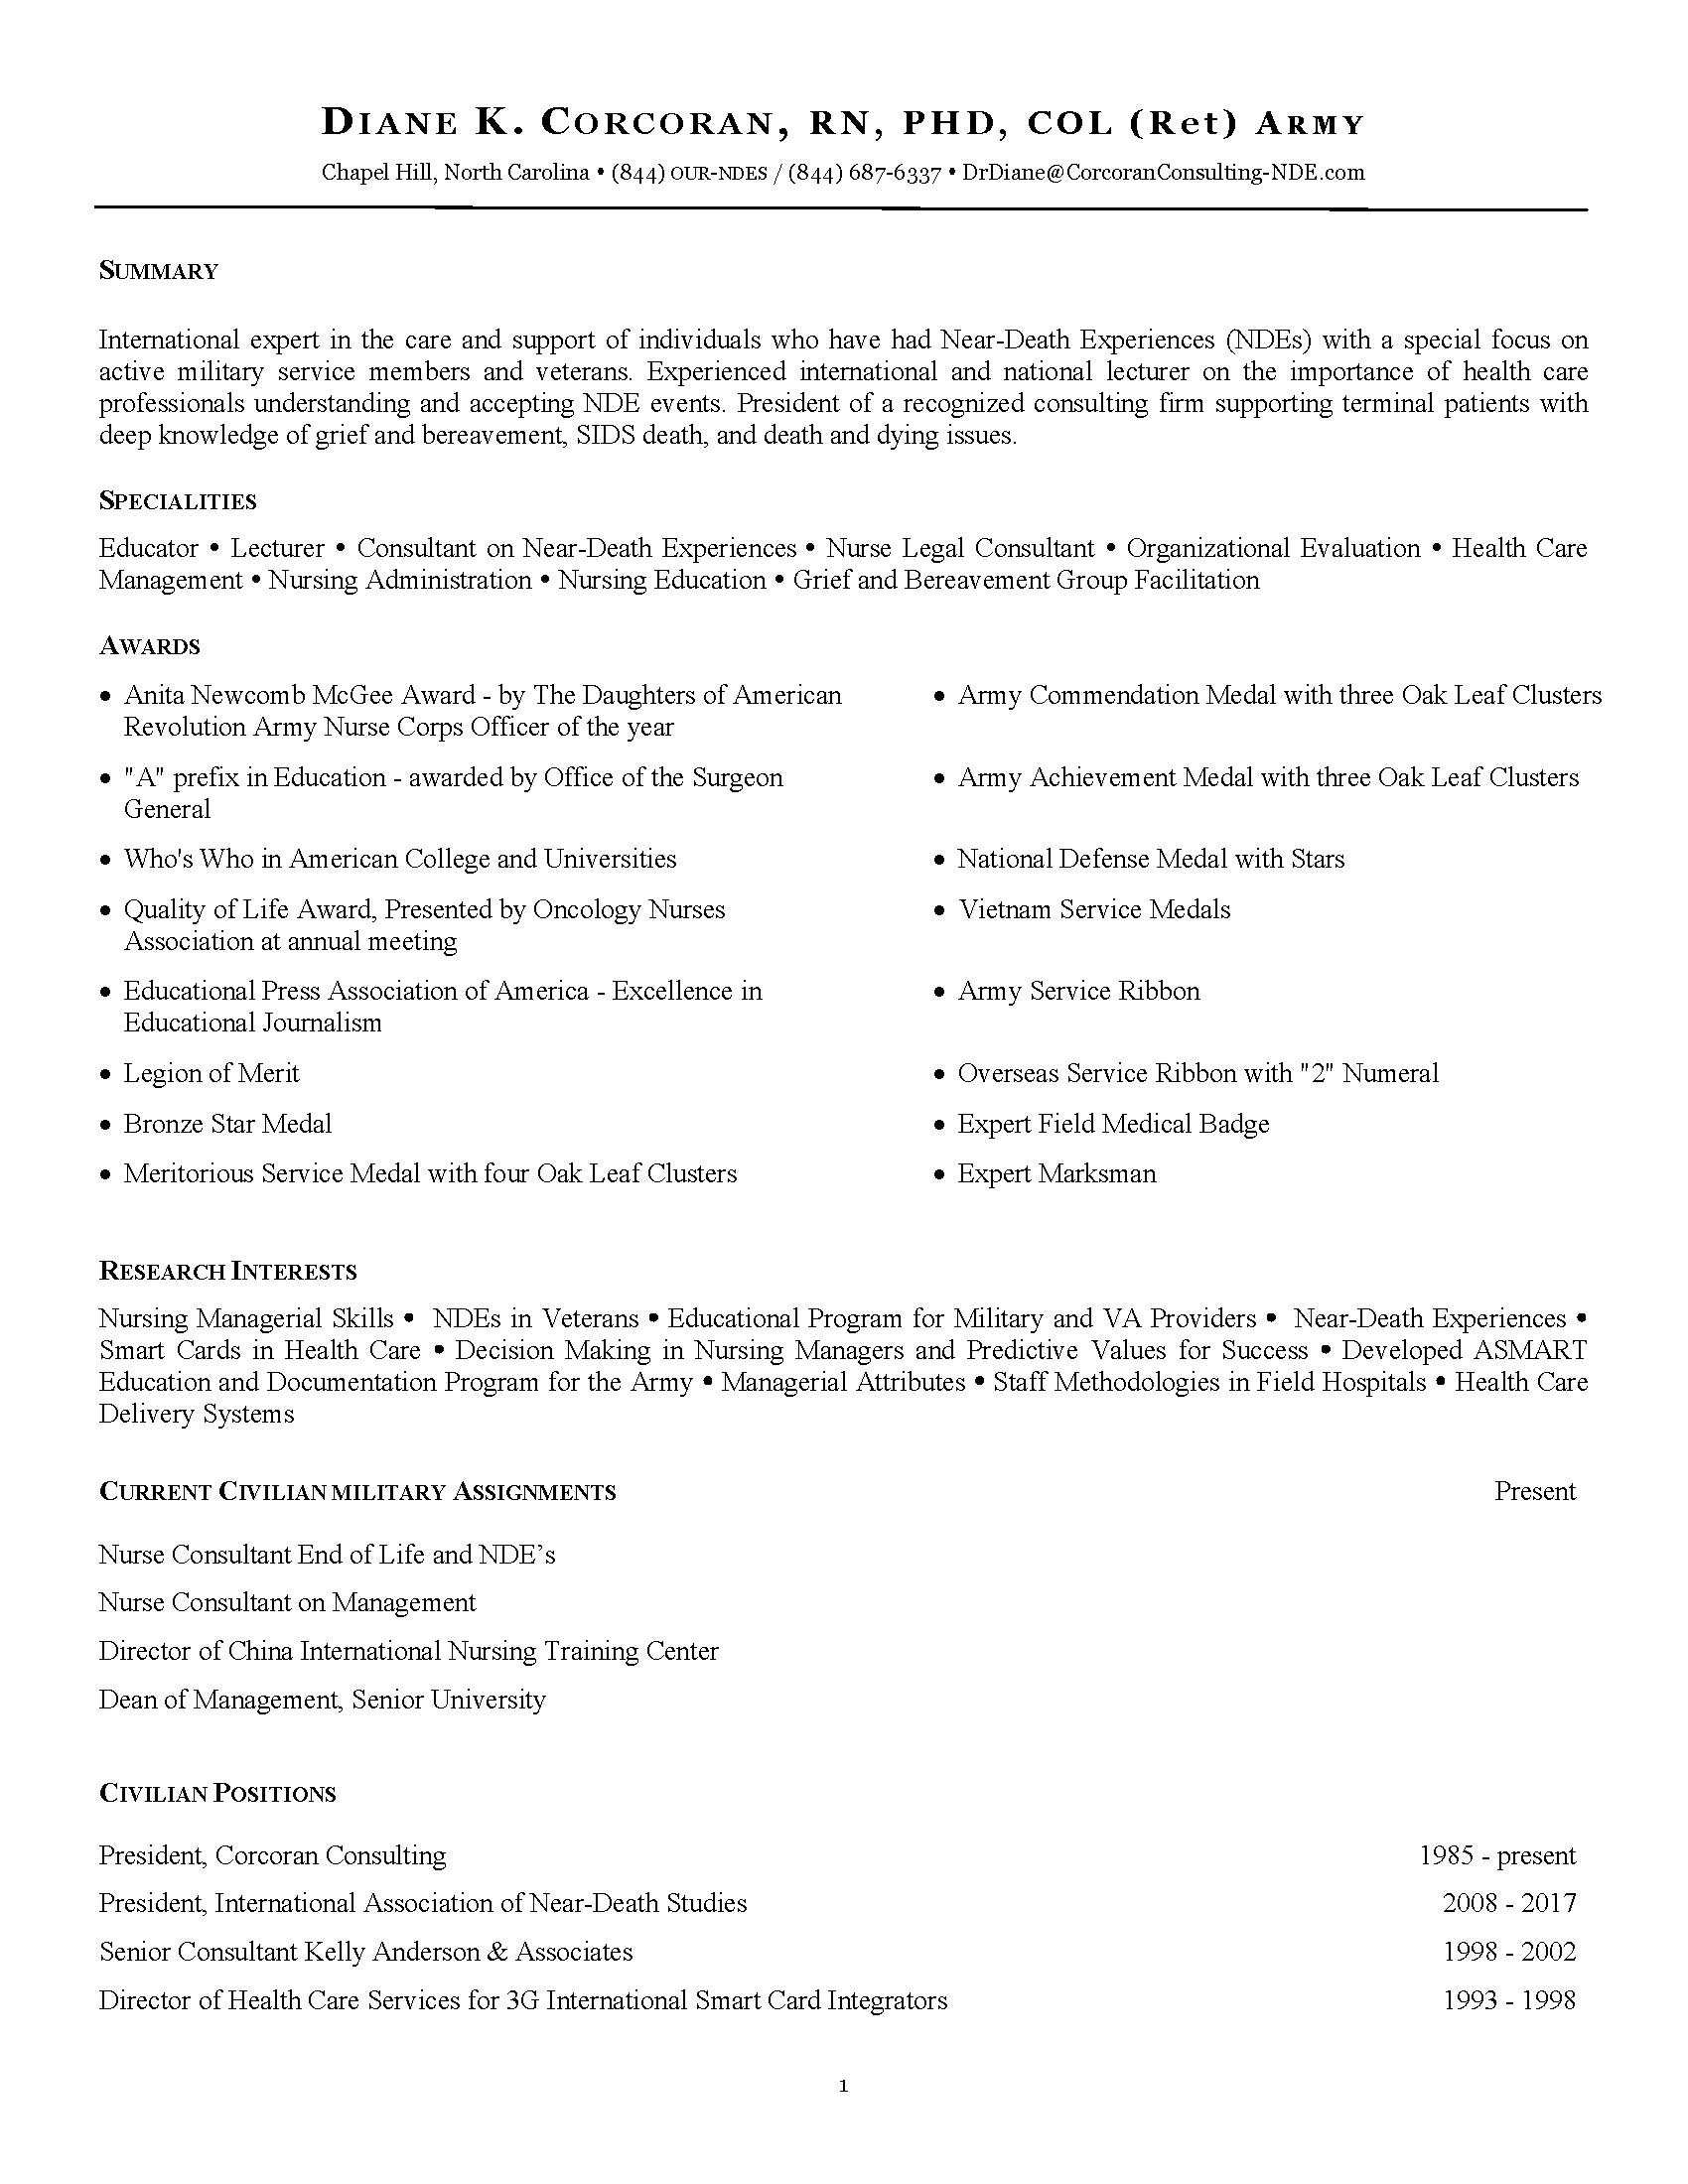 Diane Corcoran Resume V2a_Page_01.jpg